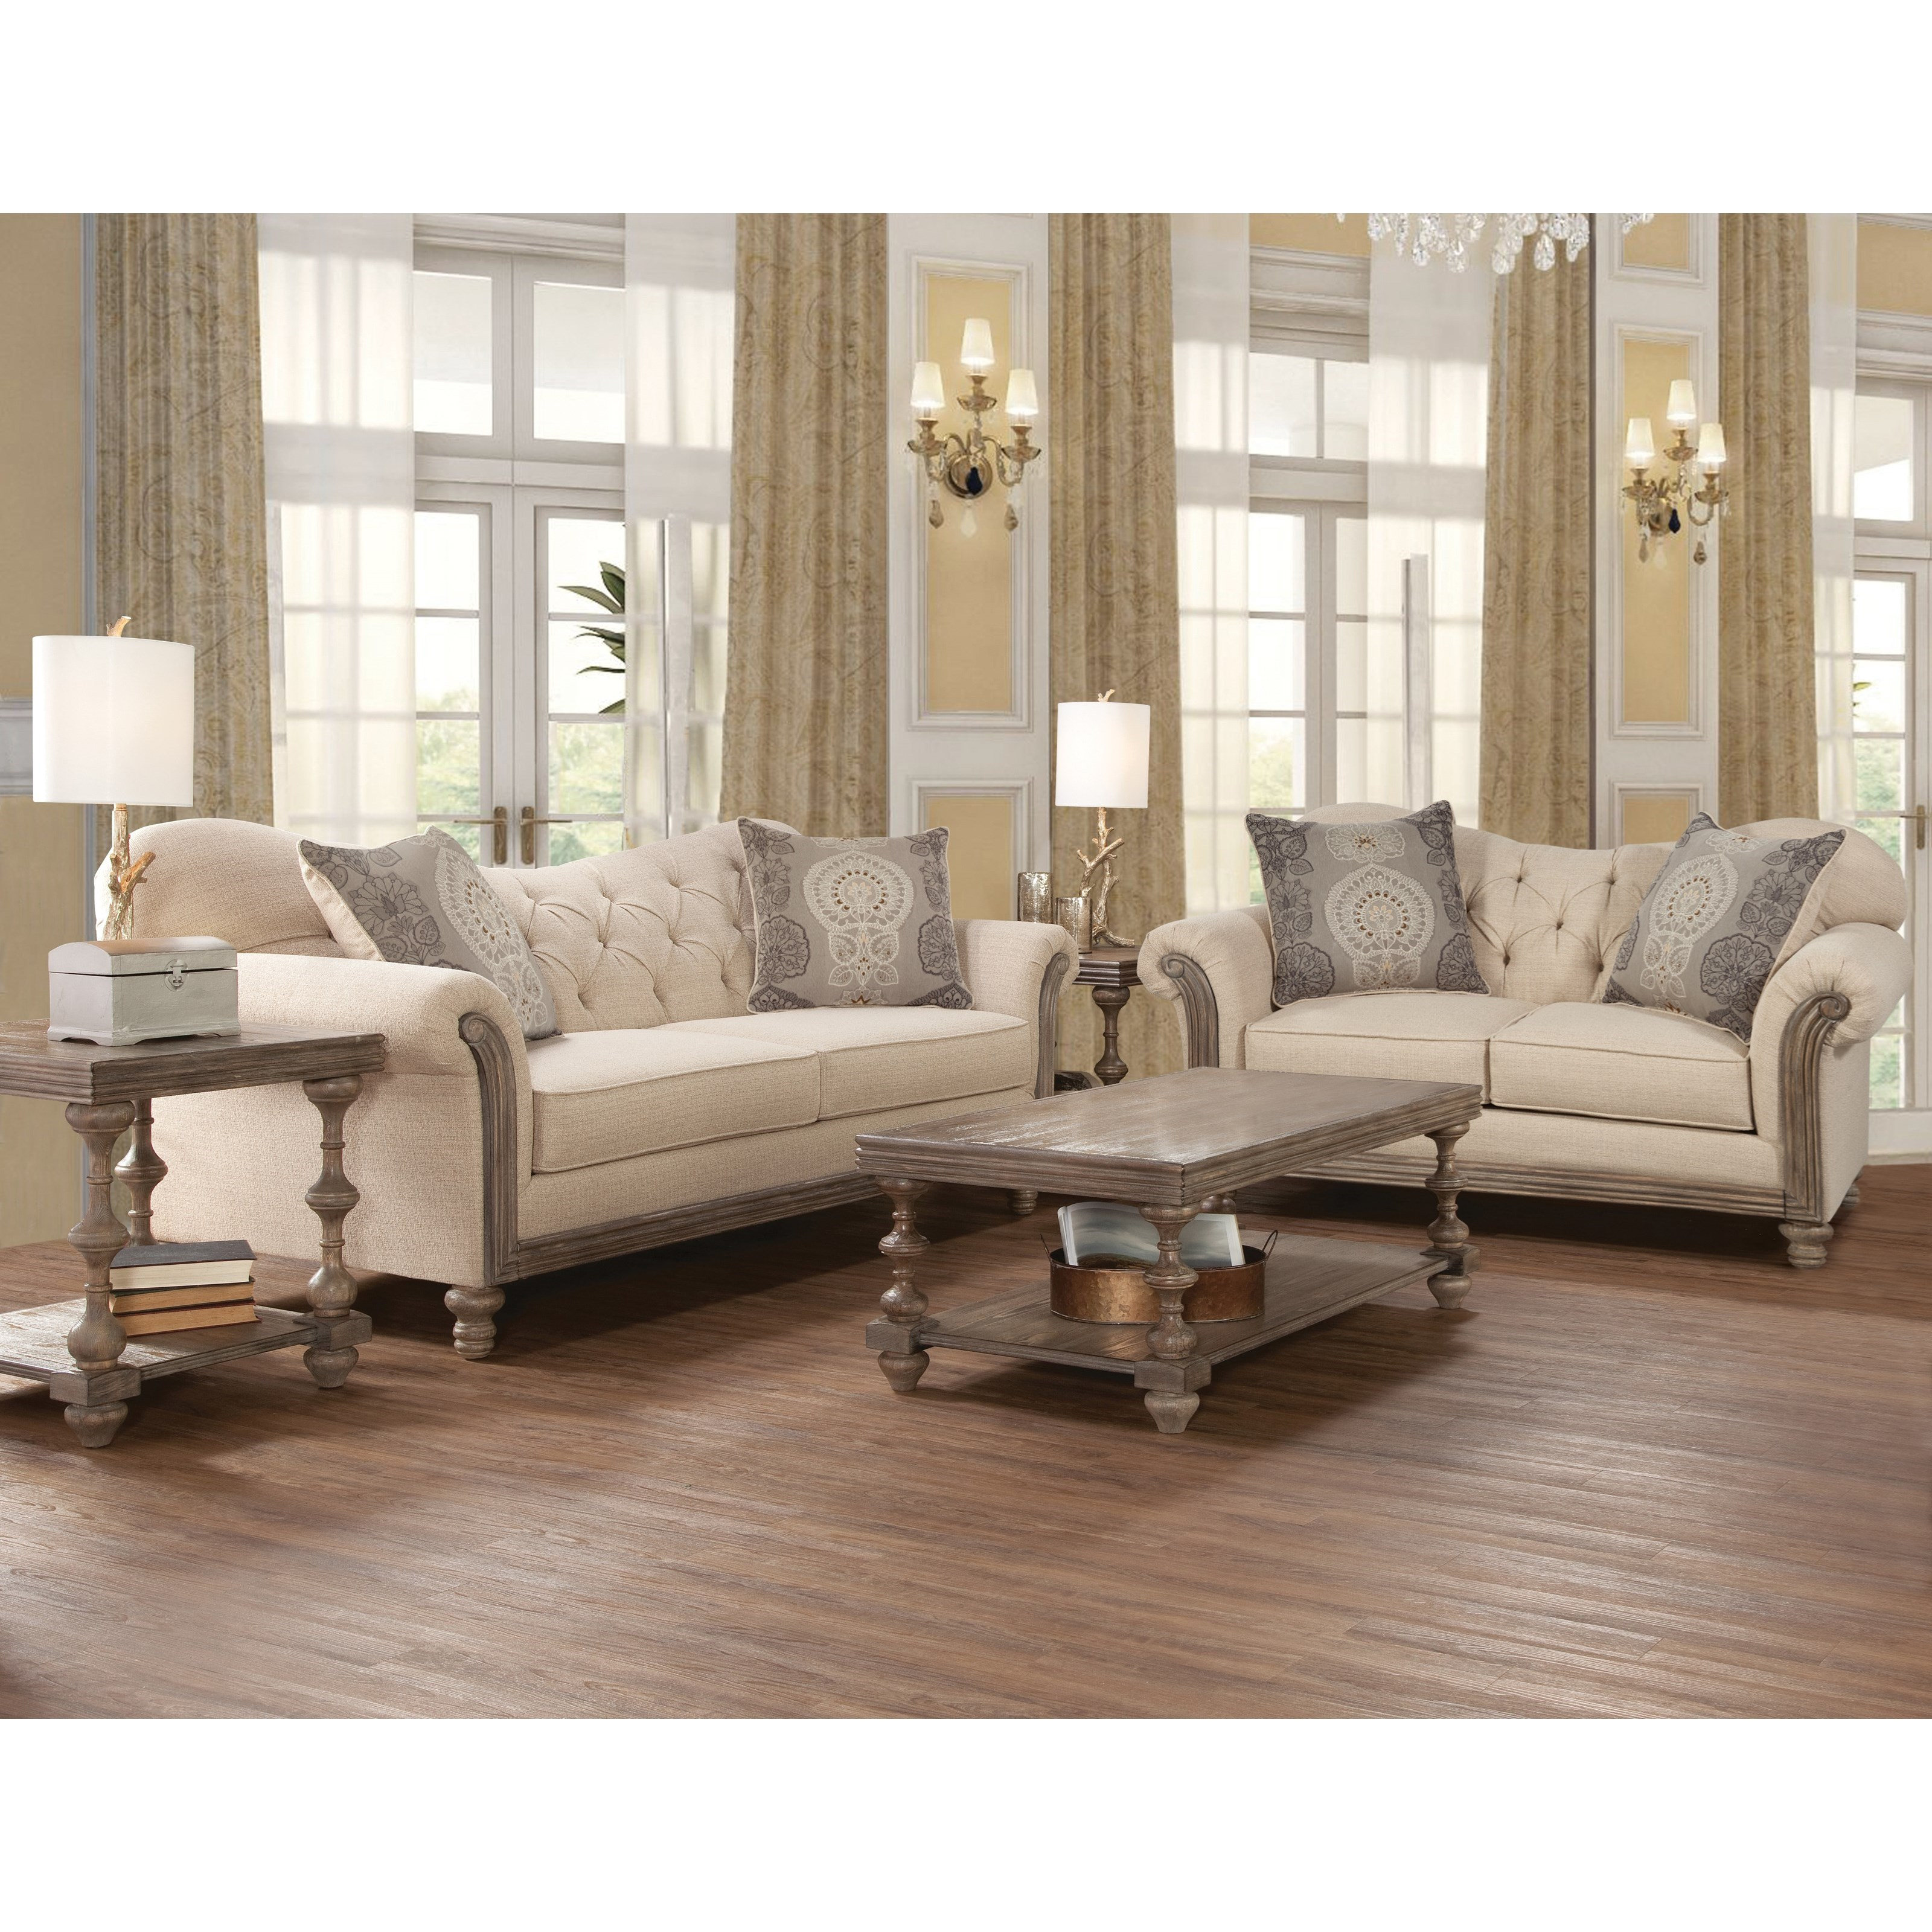 Serta Upholstery By Hughes Furniture 8725 Traditional Stationary Loveseat With Tufted Back